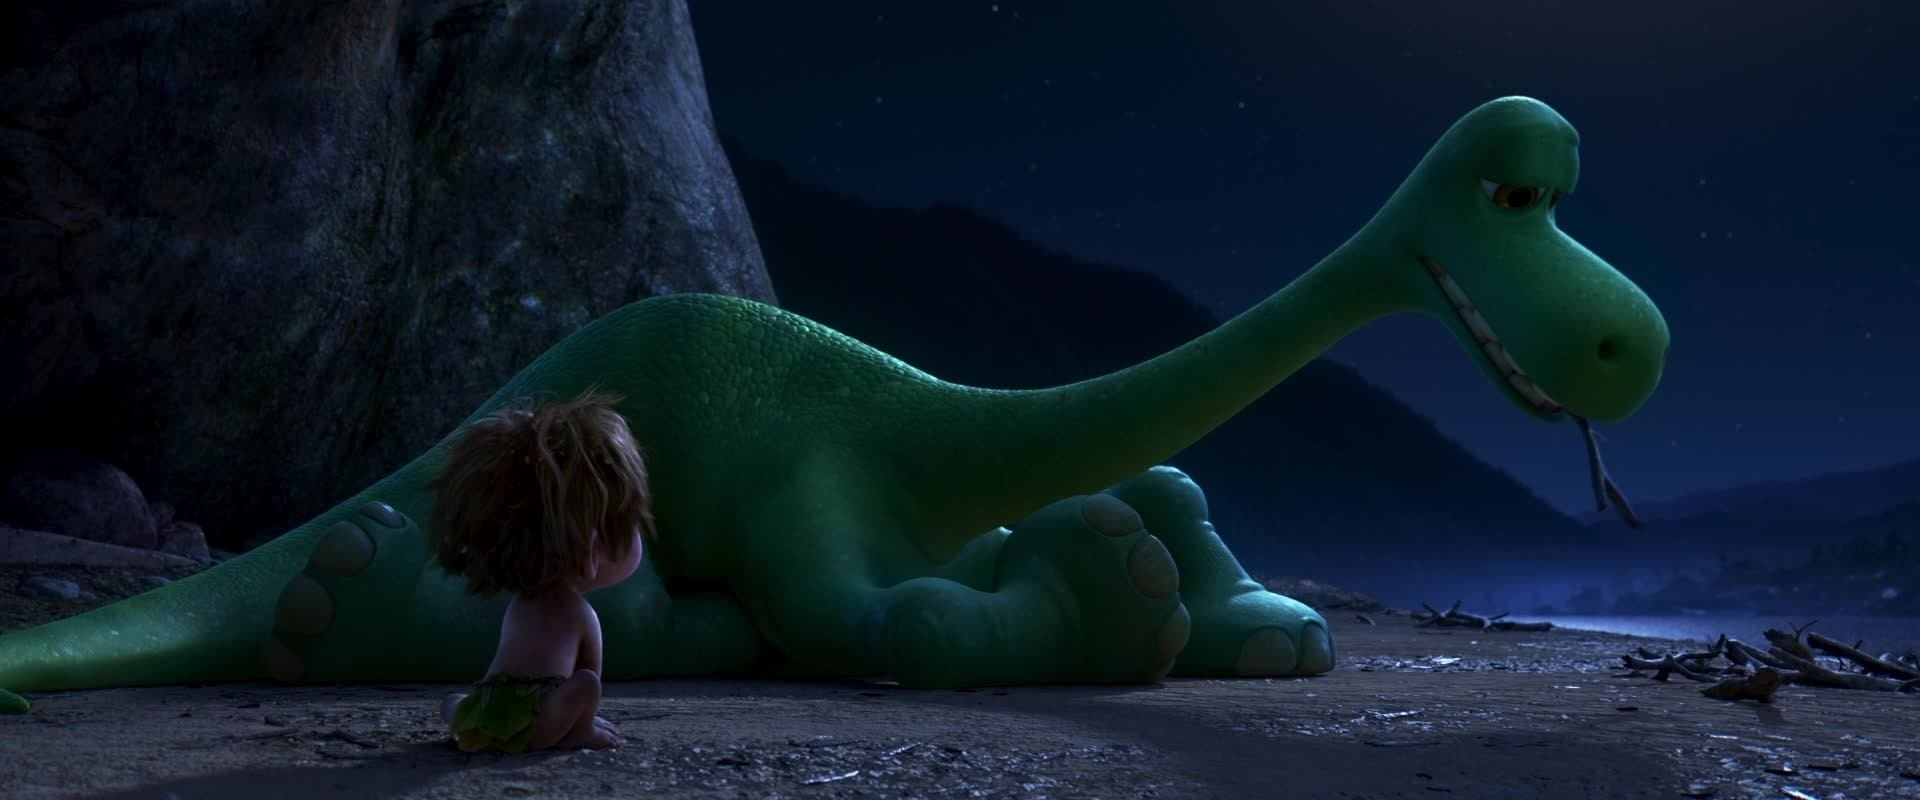 The Good Dinosaur - Extract 2